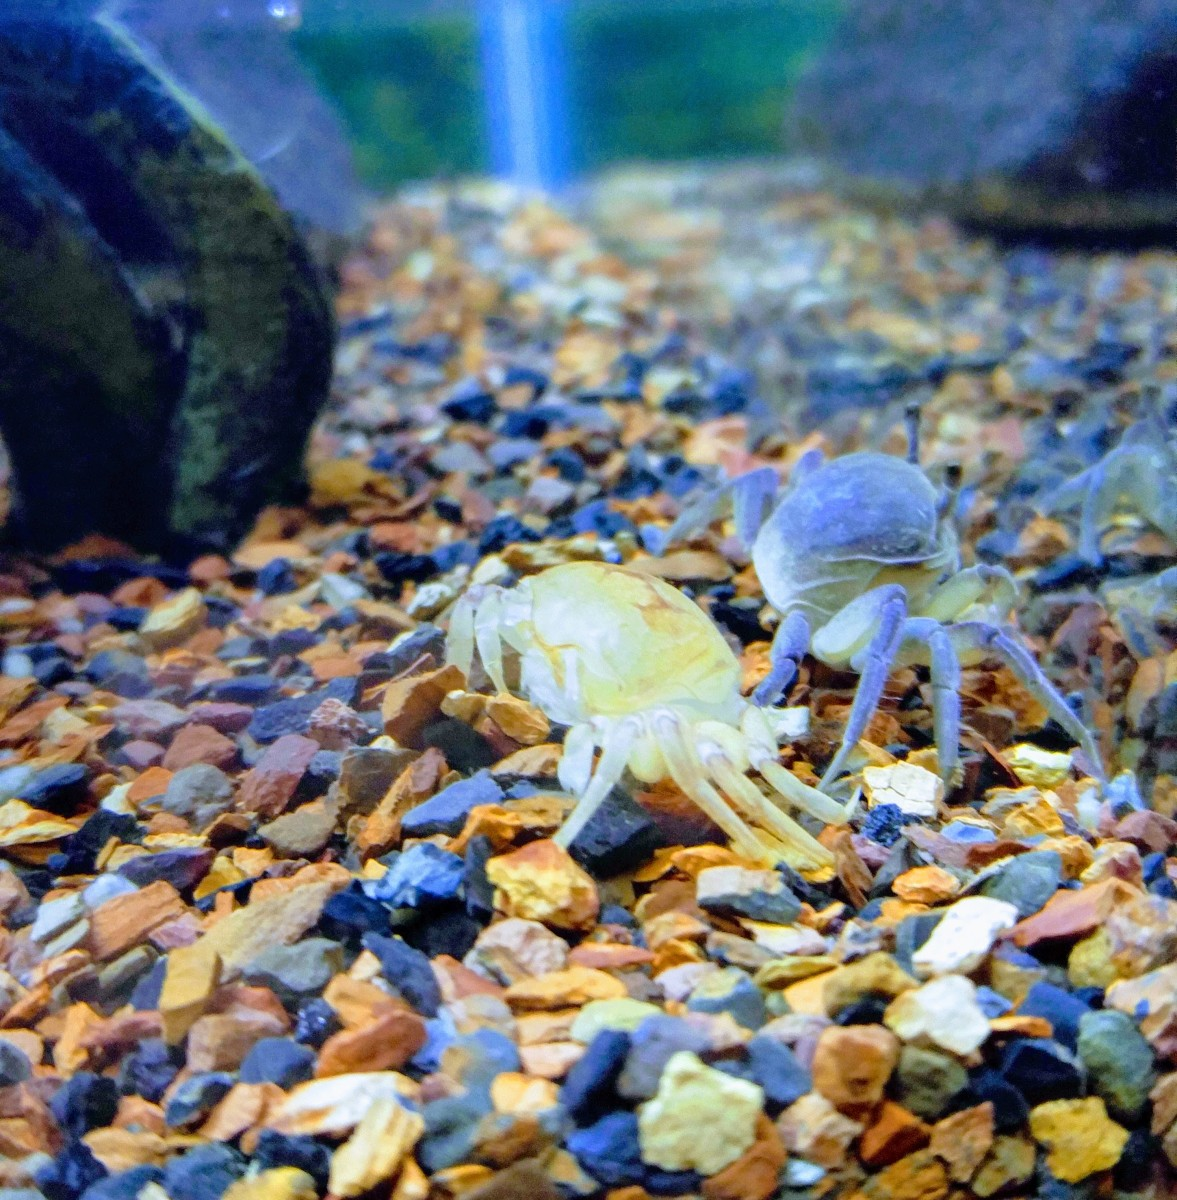 A fiddler crab after it molted.  The exoskeleton can be seen next to the crab.